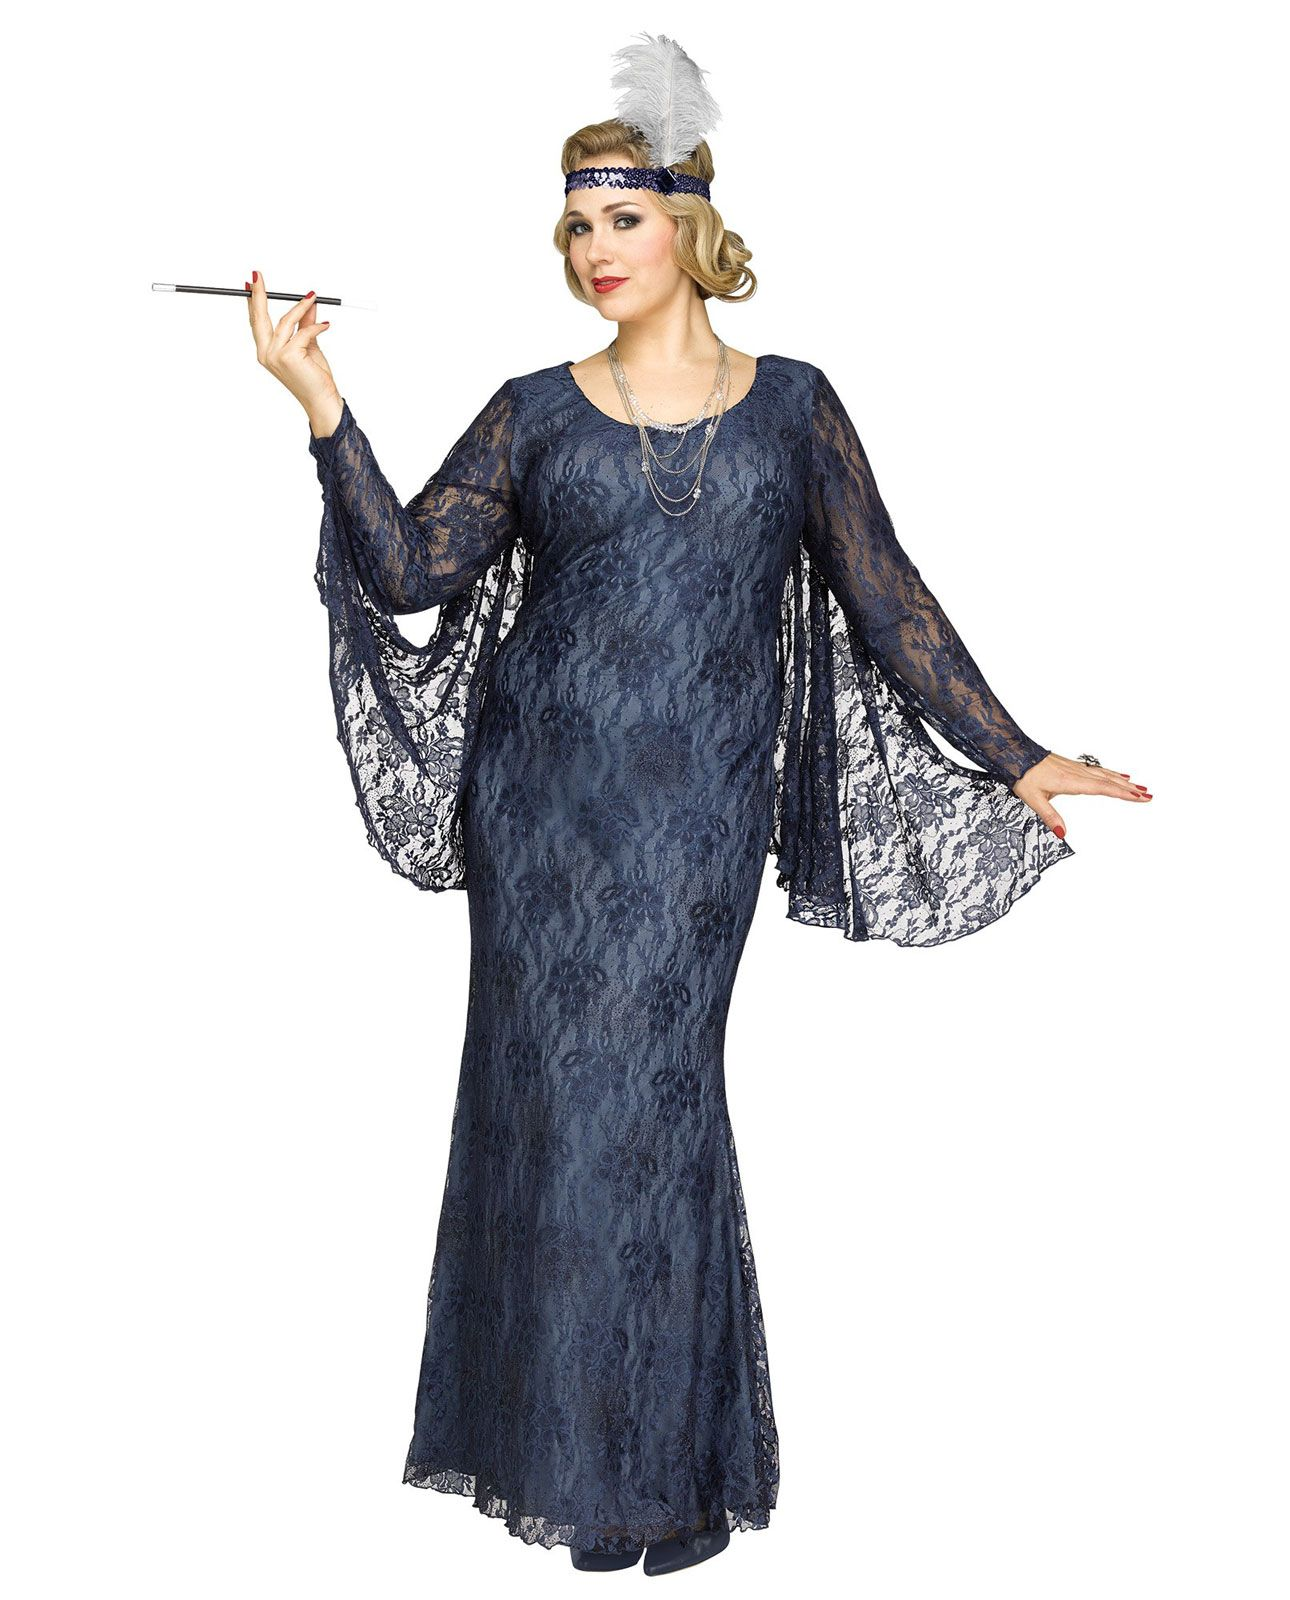 aa5d7a9bbdf 1920s Flapper Gatsby Party Adult Women s Plus Size Dress Costume ...